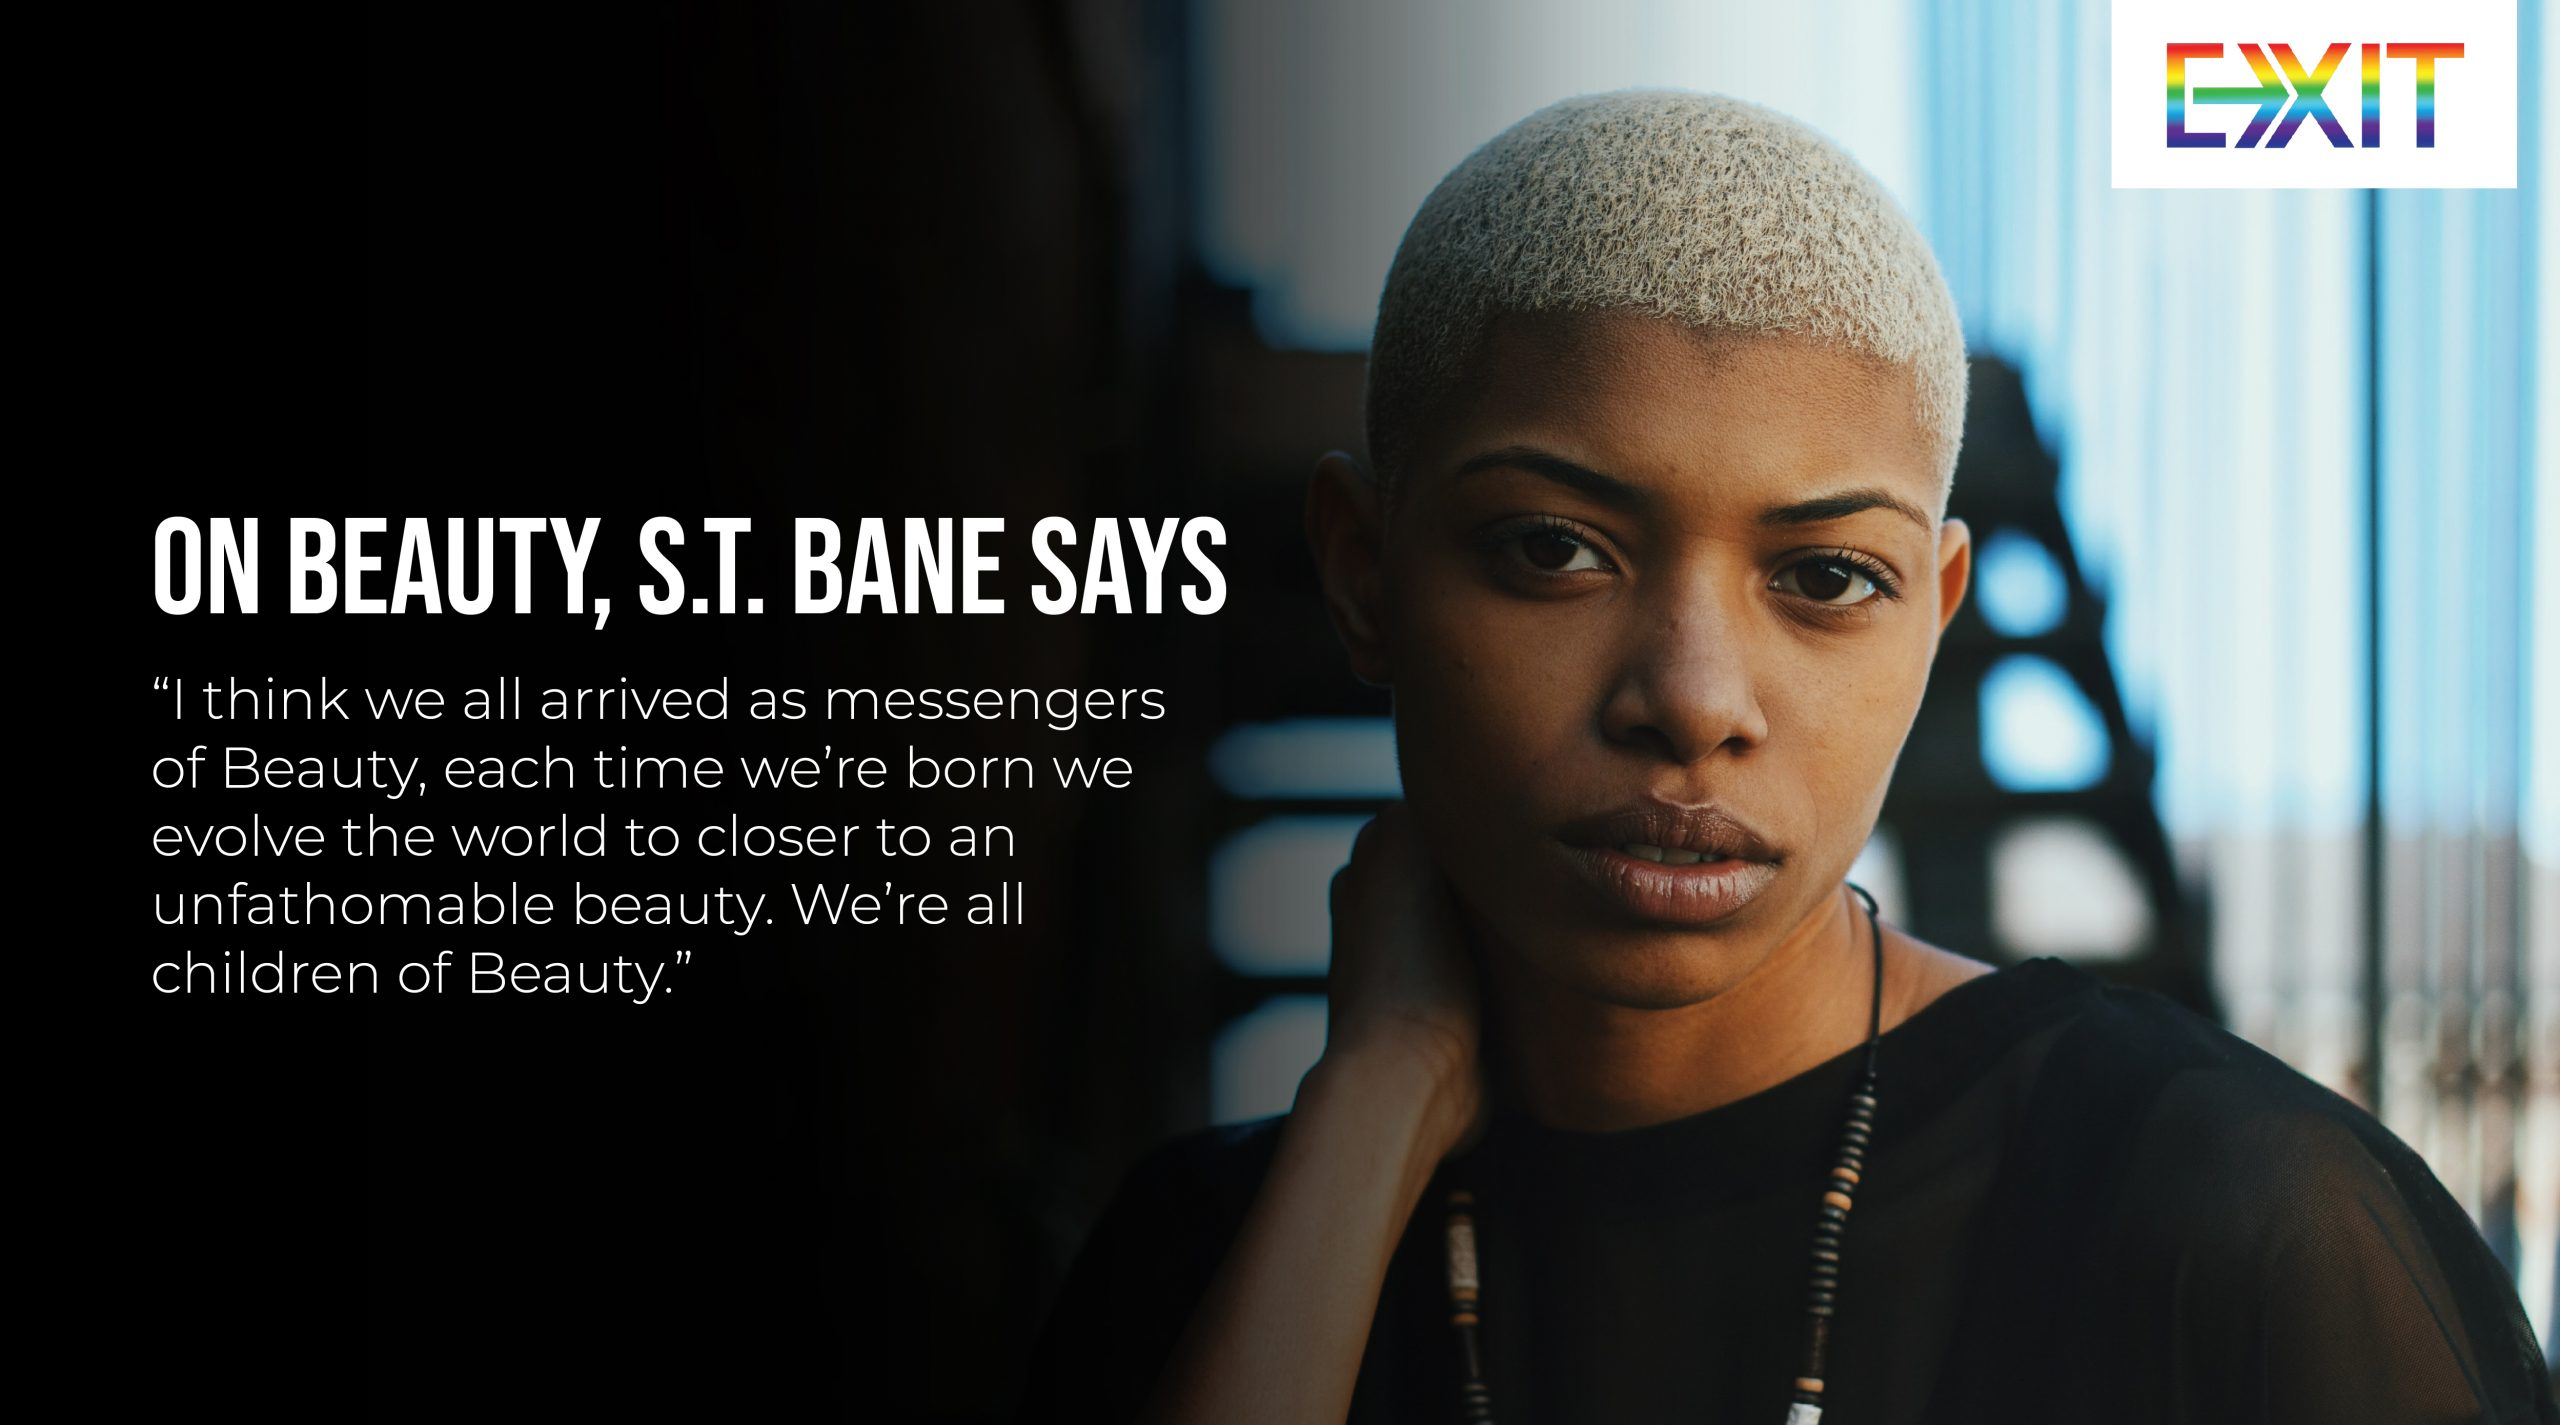 ON BEAUTY – S.T. BANE SAYS